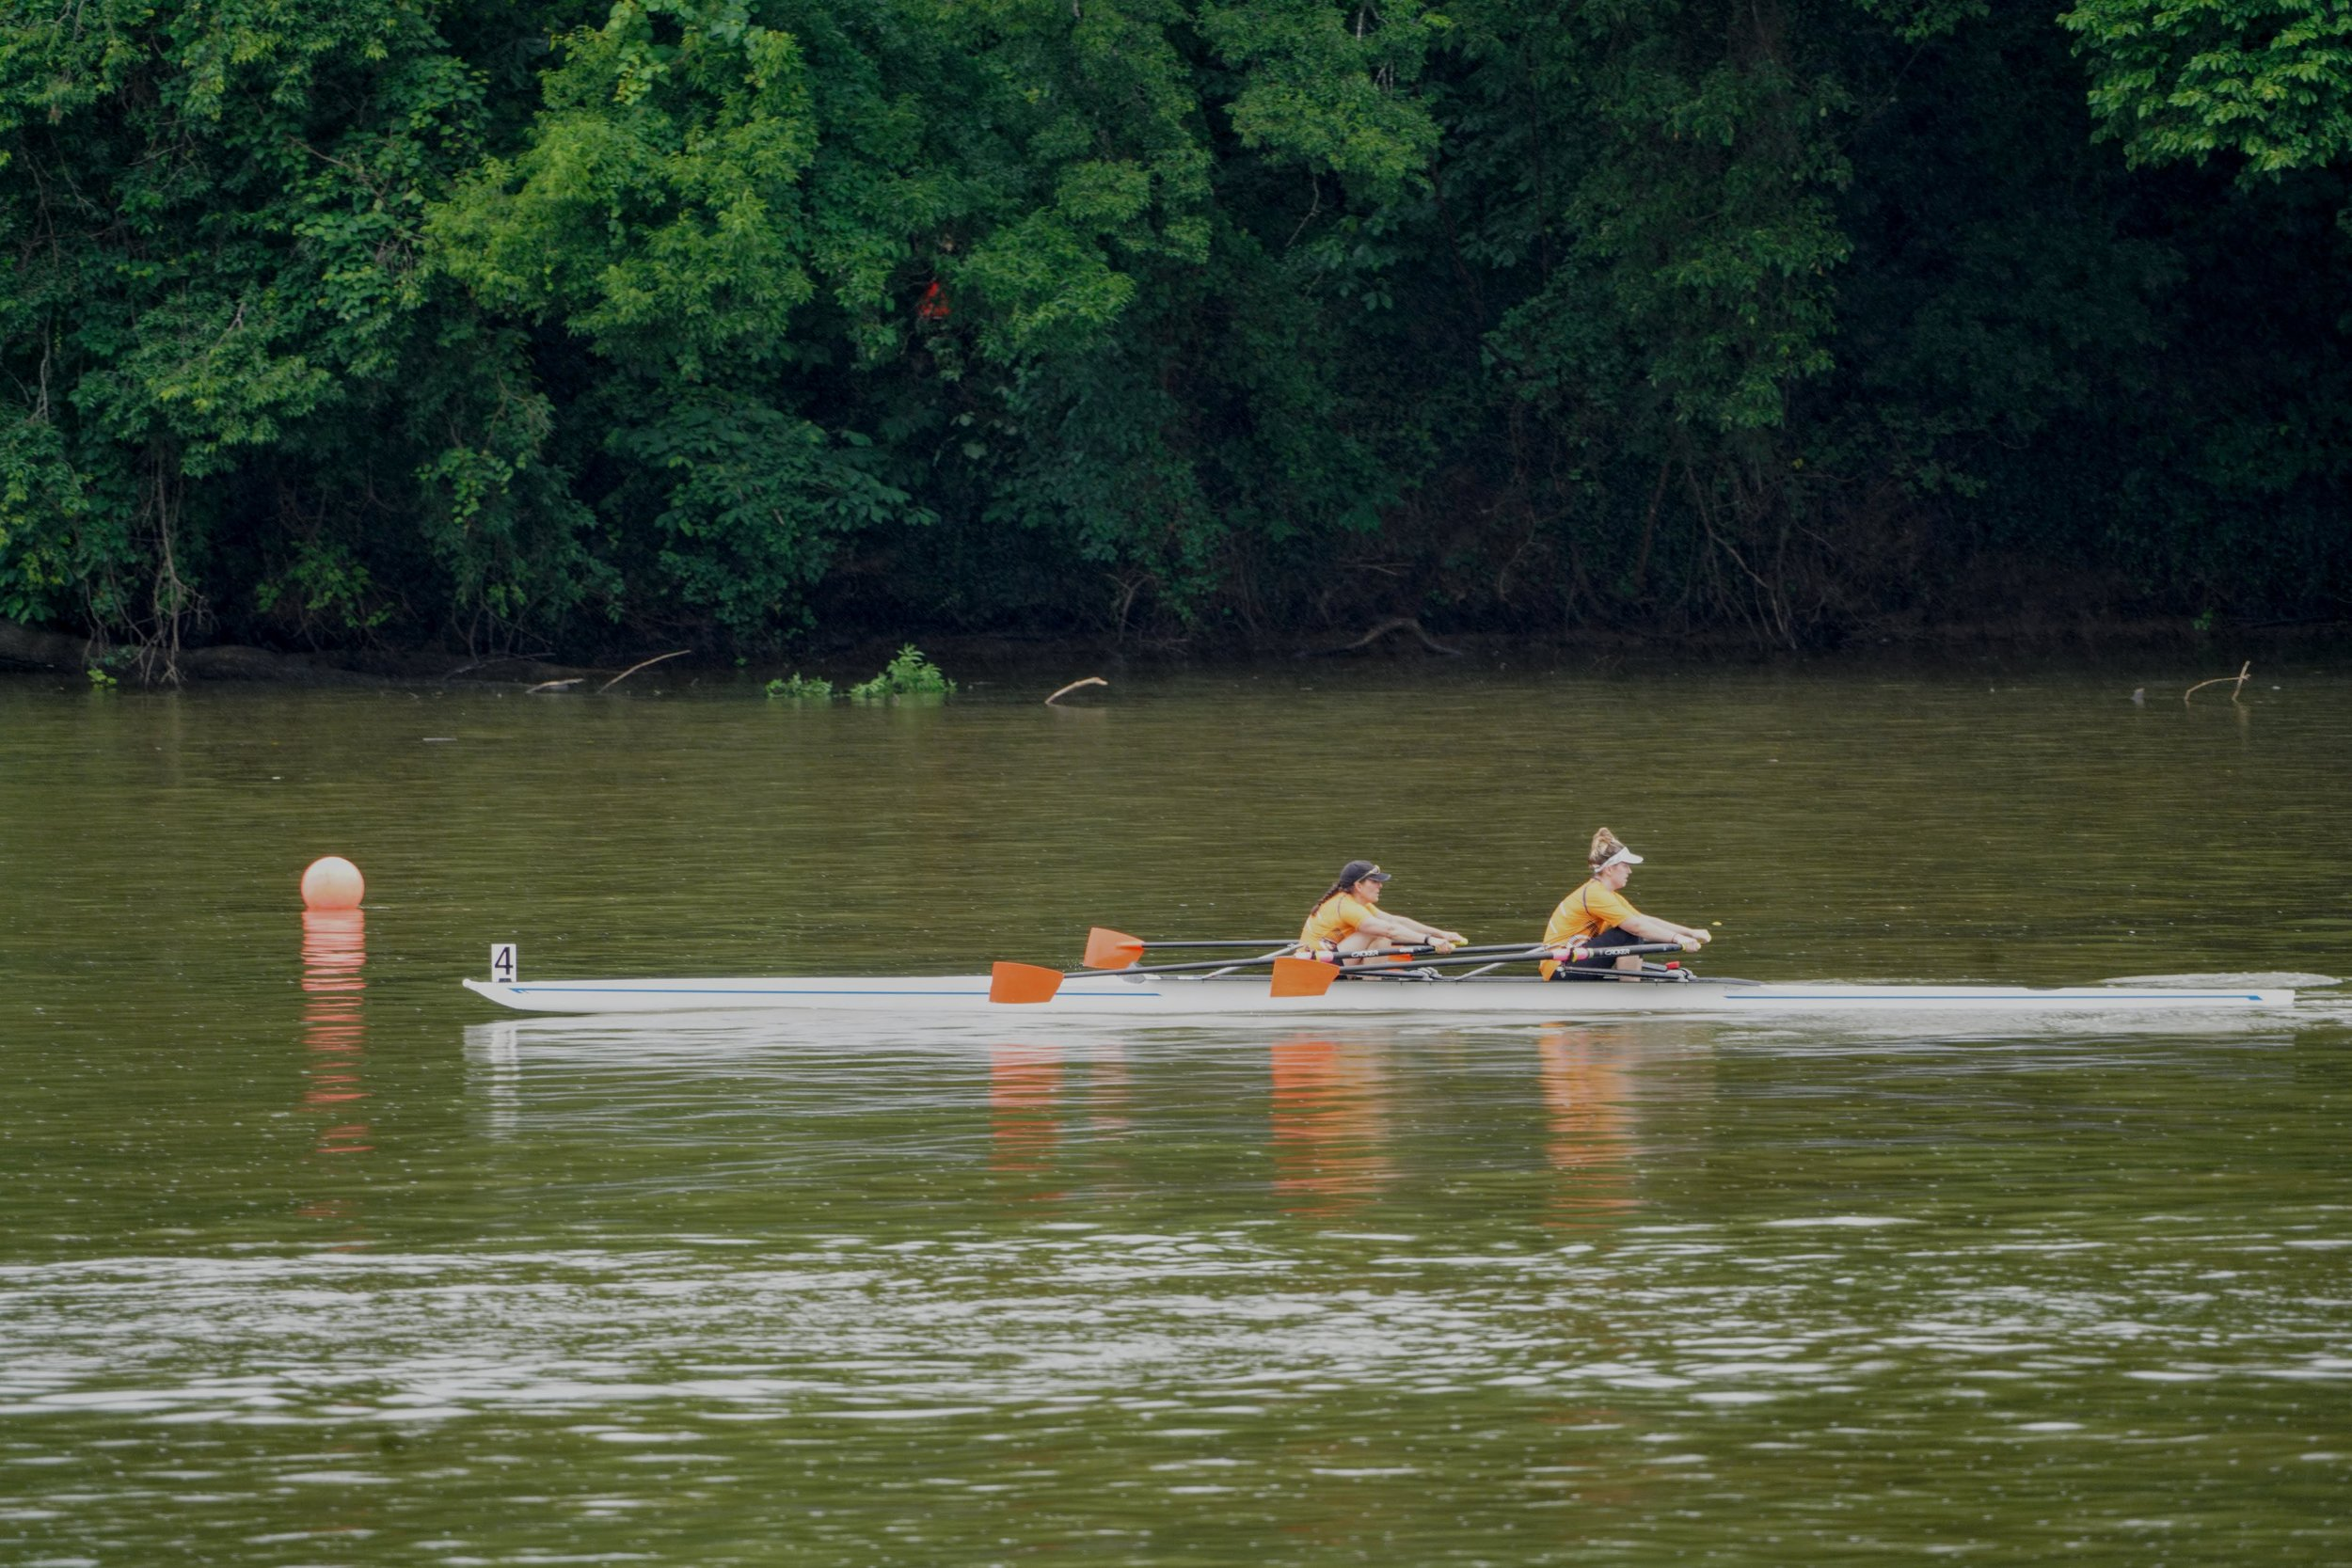 Women Master 2x - came in second after sprinting through